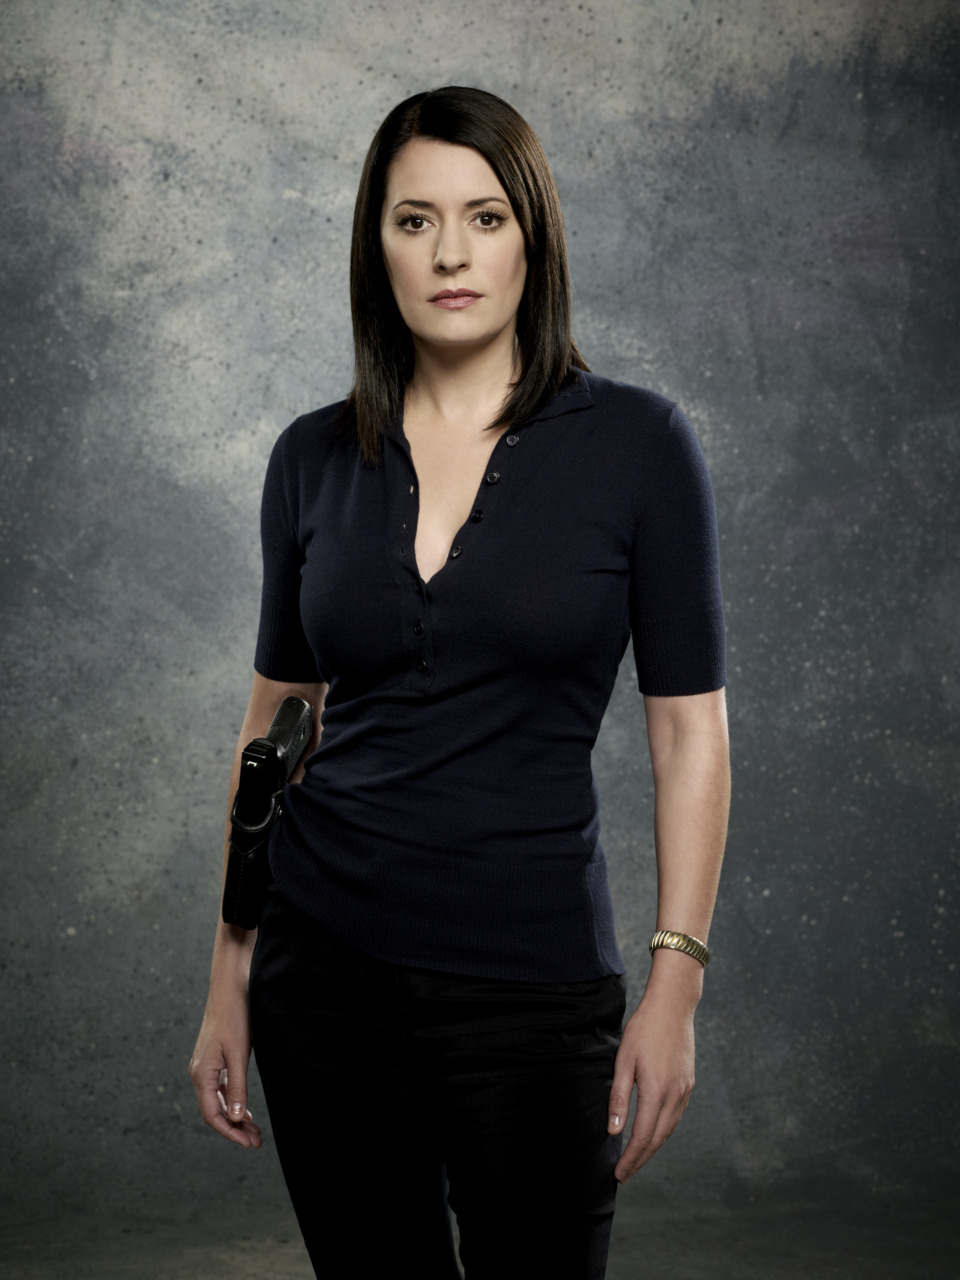 Emily Prentiss Leaving Criminal Minds http://criminalminds.wikia.com/wiki/Emily_Prentiss